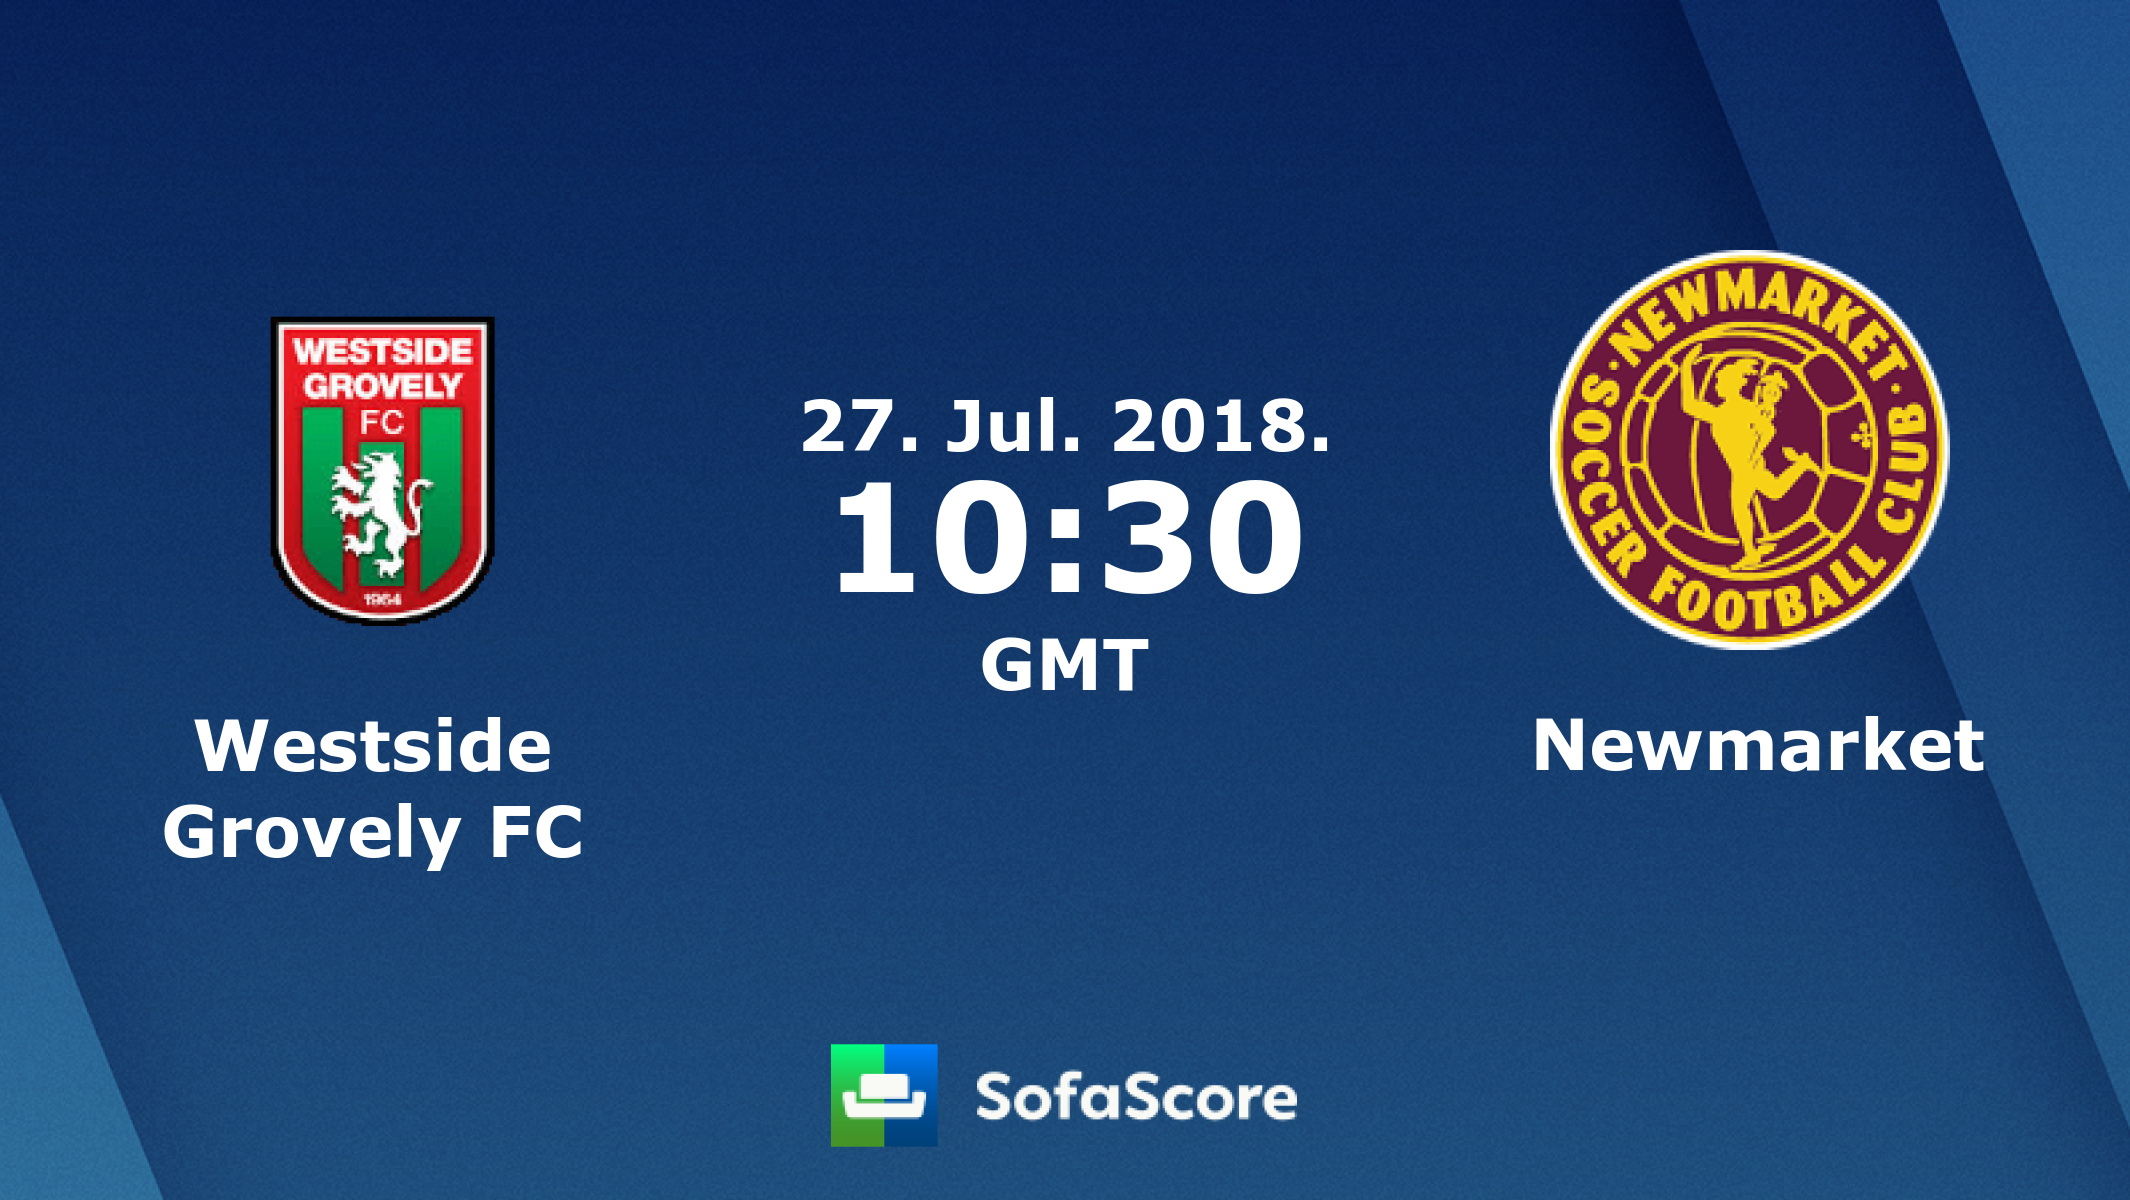 Westside Newmarket Sfc Live Score Video Stream And H2h Results